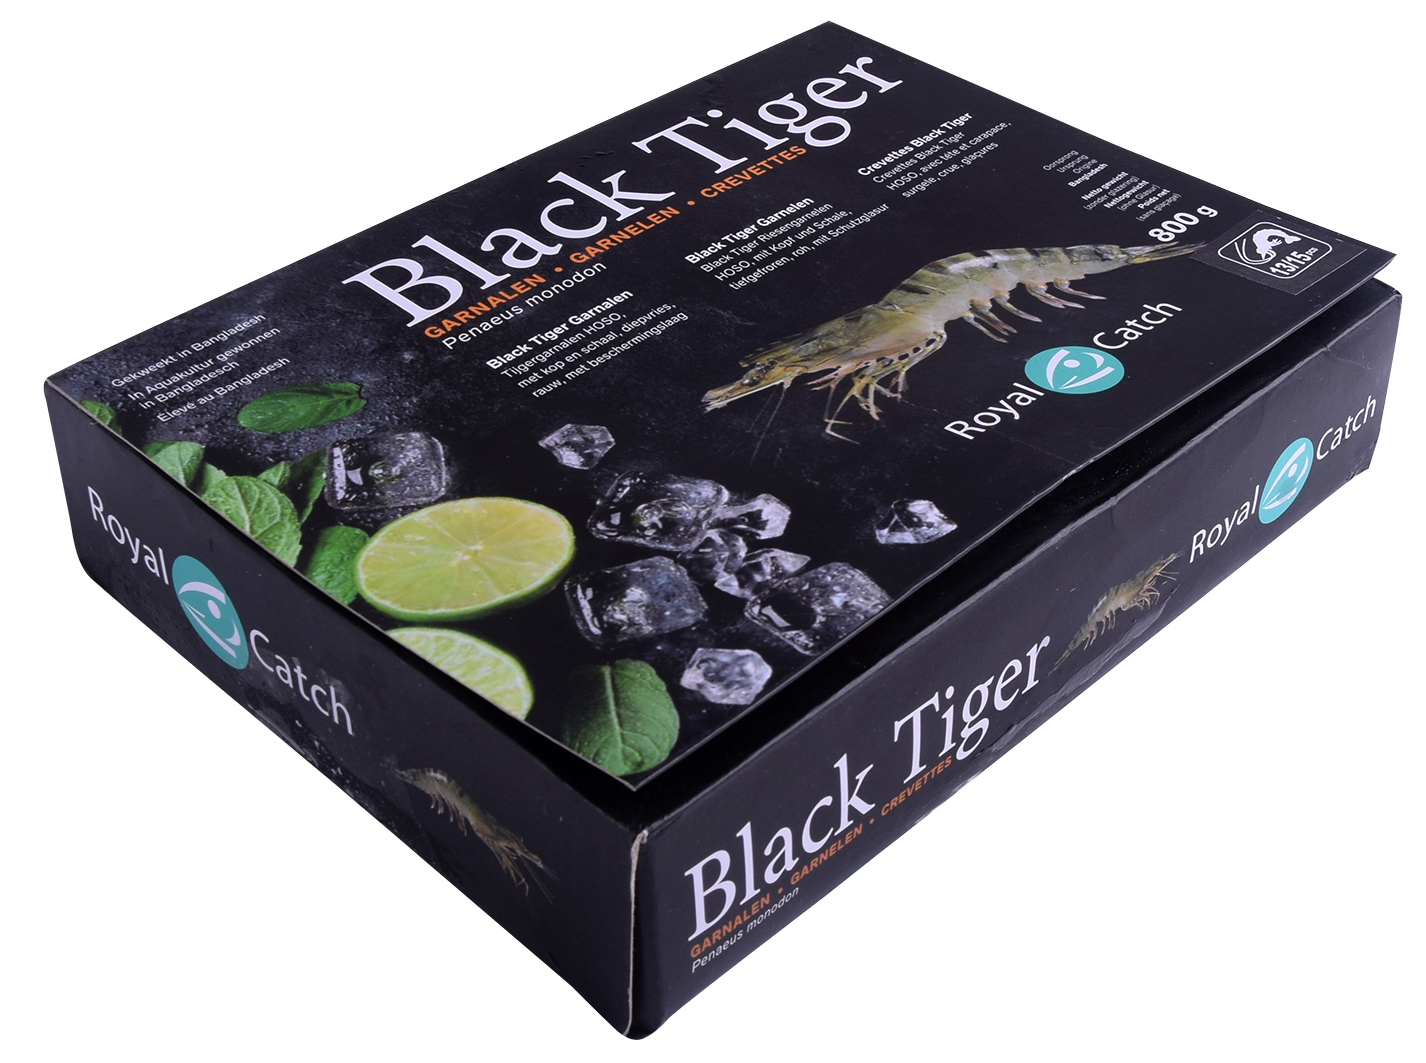 Productafbeelding GAMBA BT M. KOP 13/15 BEVR. A 1 KG ROYAL CATCH